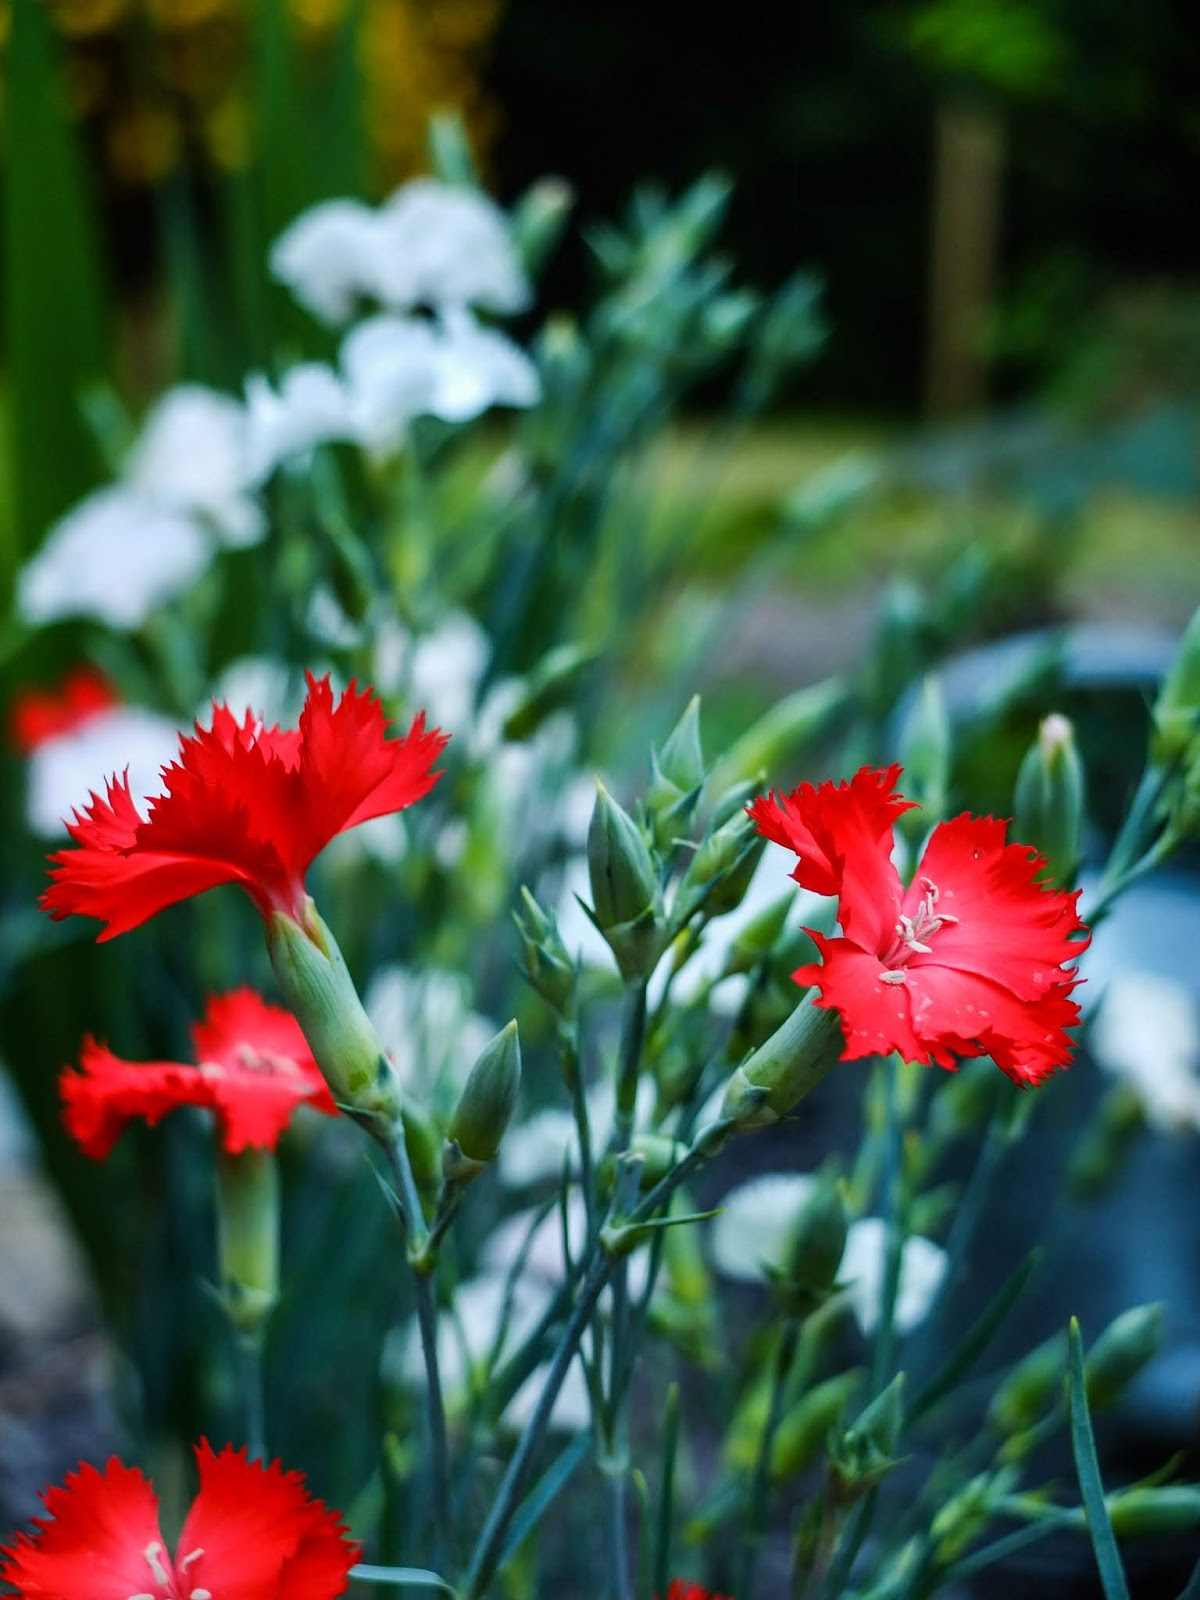 Red and white Carnation flower bunches.